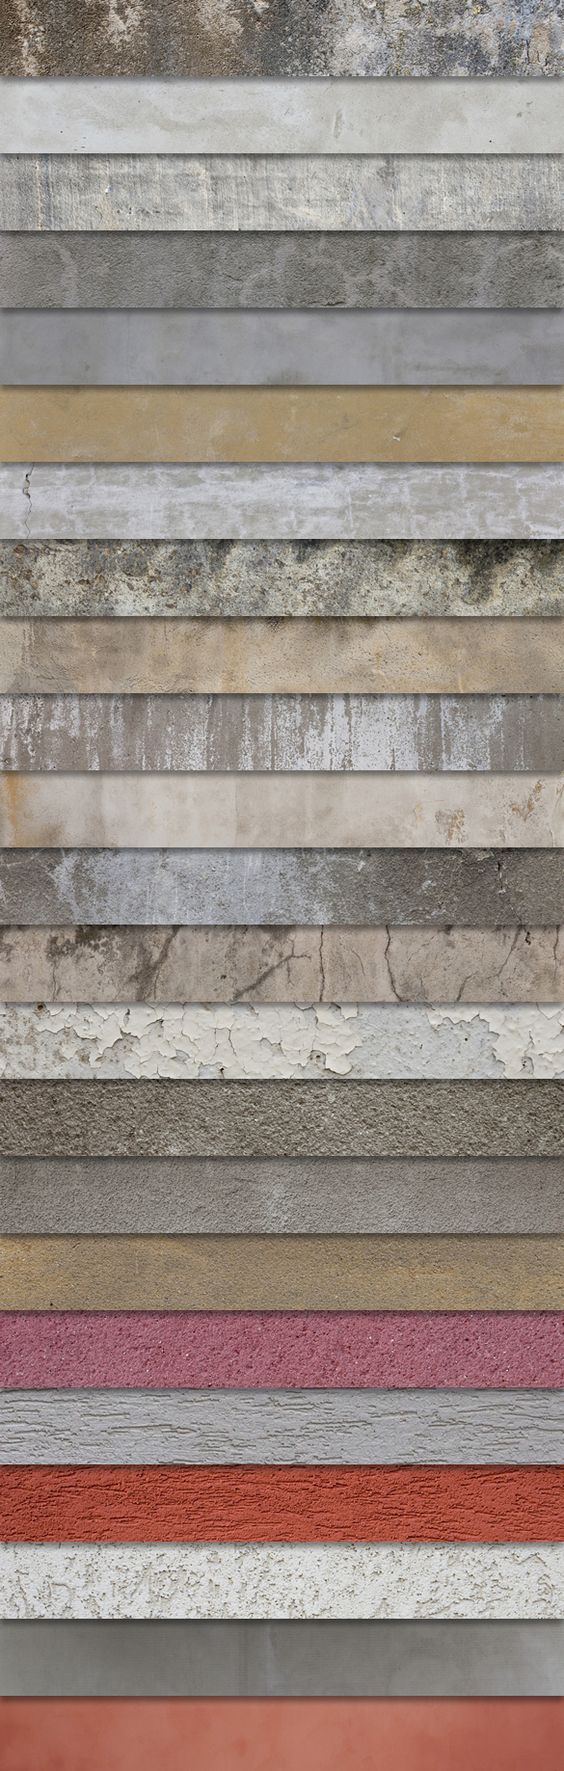 Plaster And Concrete Textures And They Re Free To